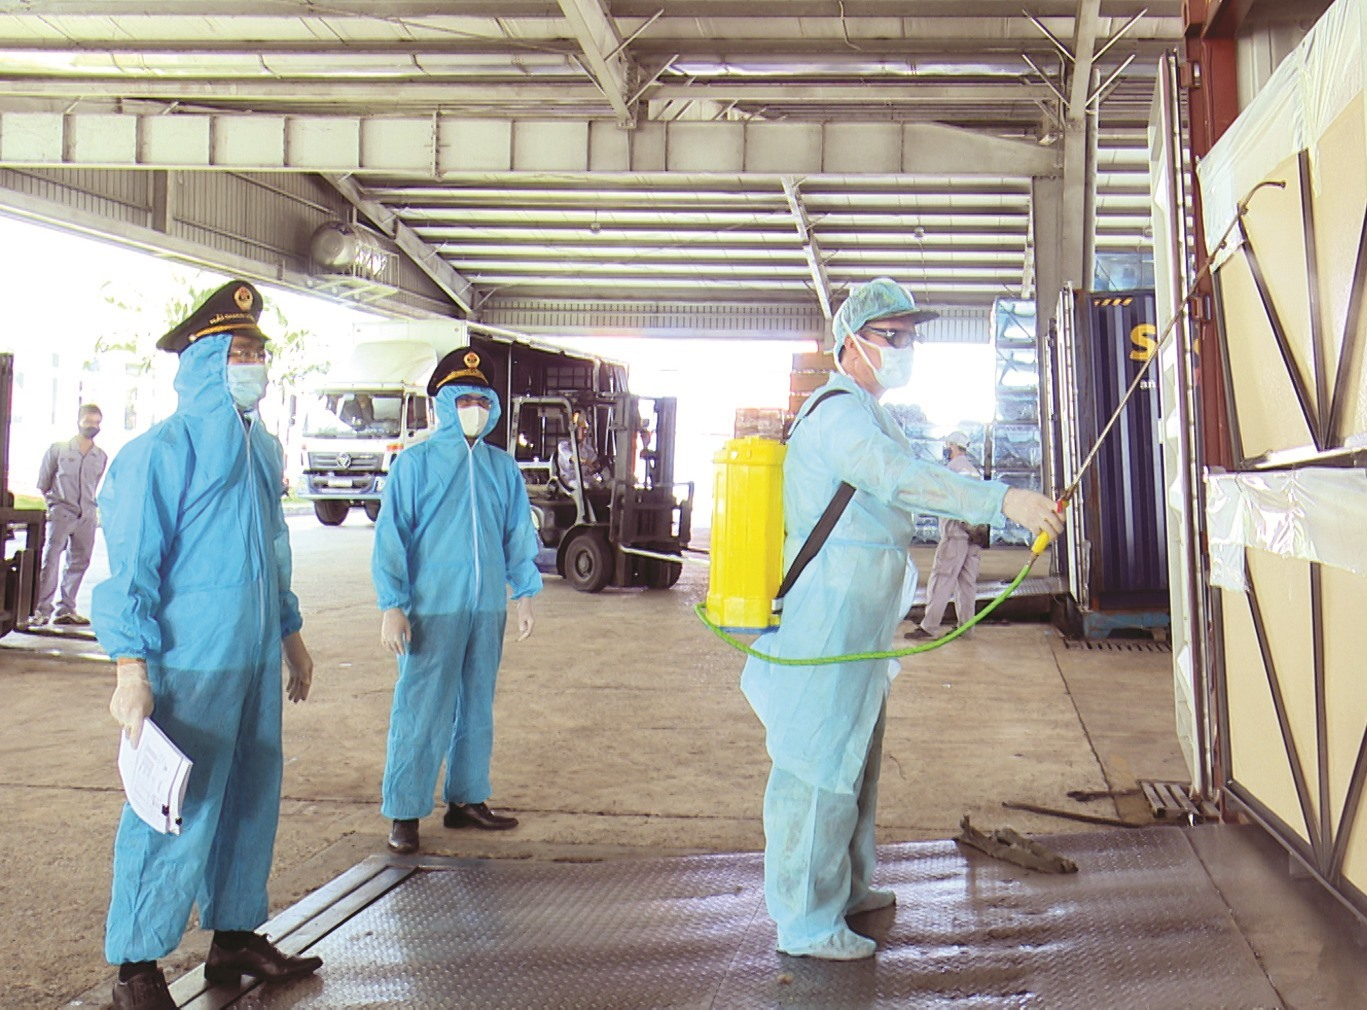 Spraying disinfectant on containers